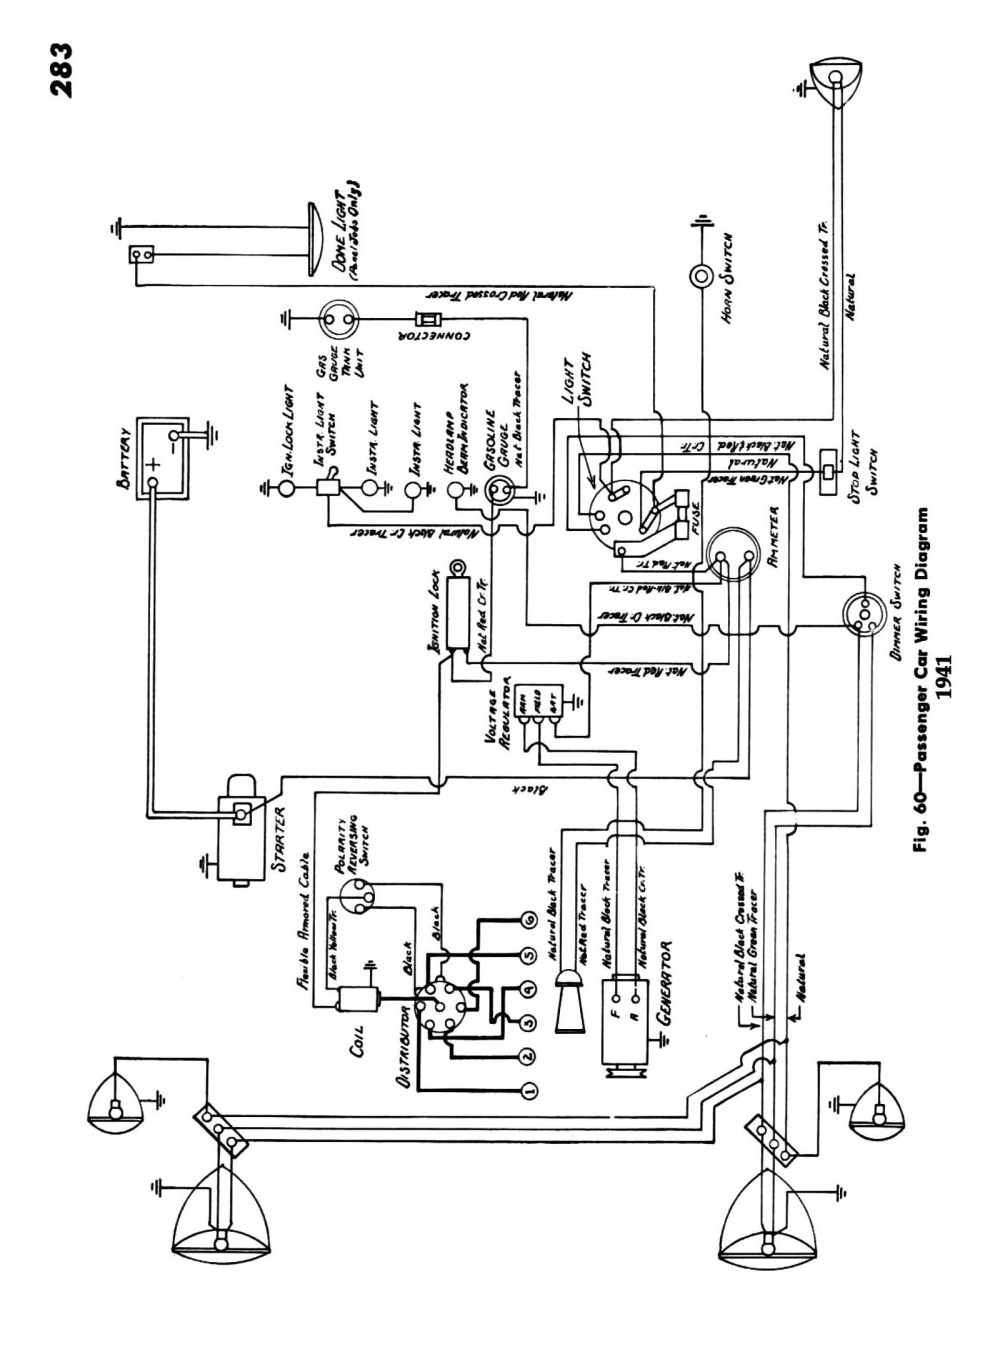 medium resolution of 1947 ford wiring diagram p9 schwabenschamanen de u2022wiring diagram for 1950 chevy truck wiring diagram